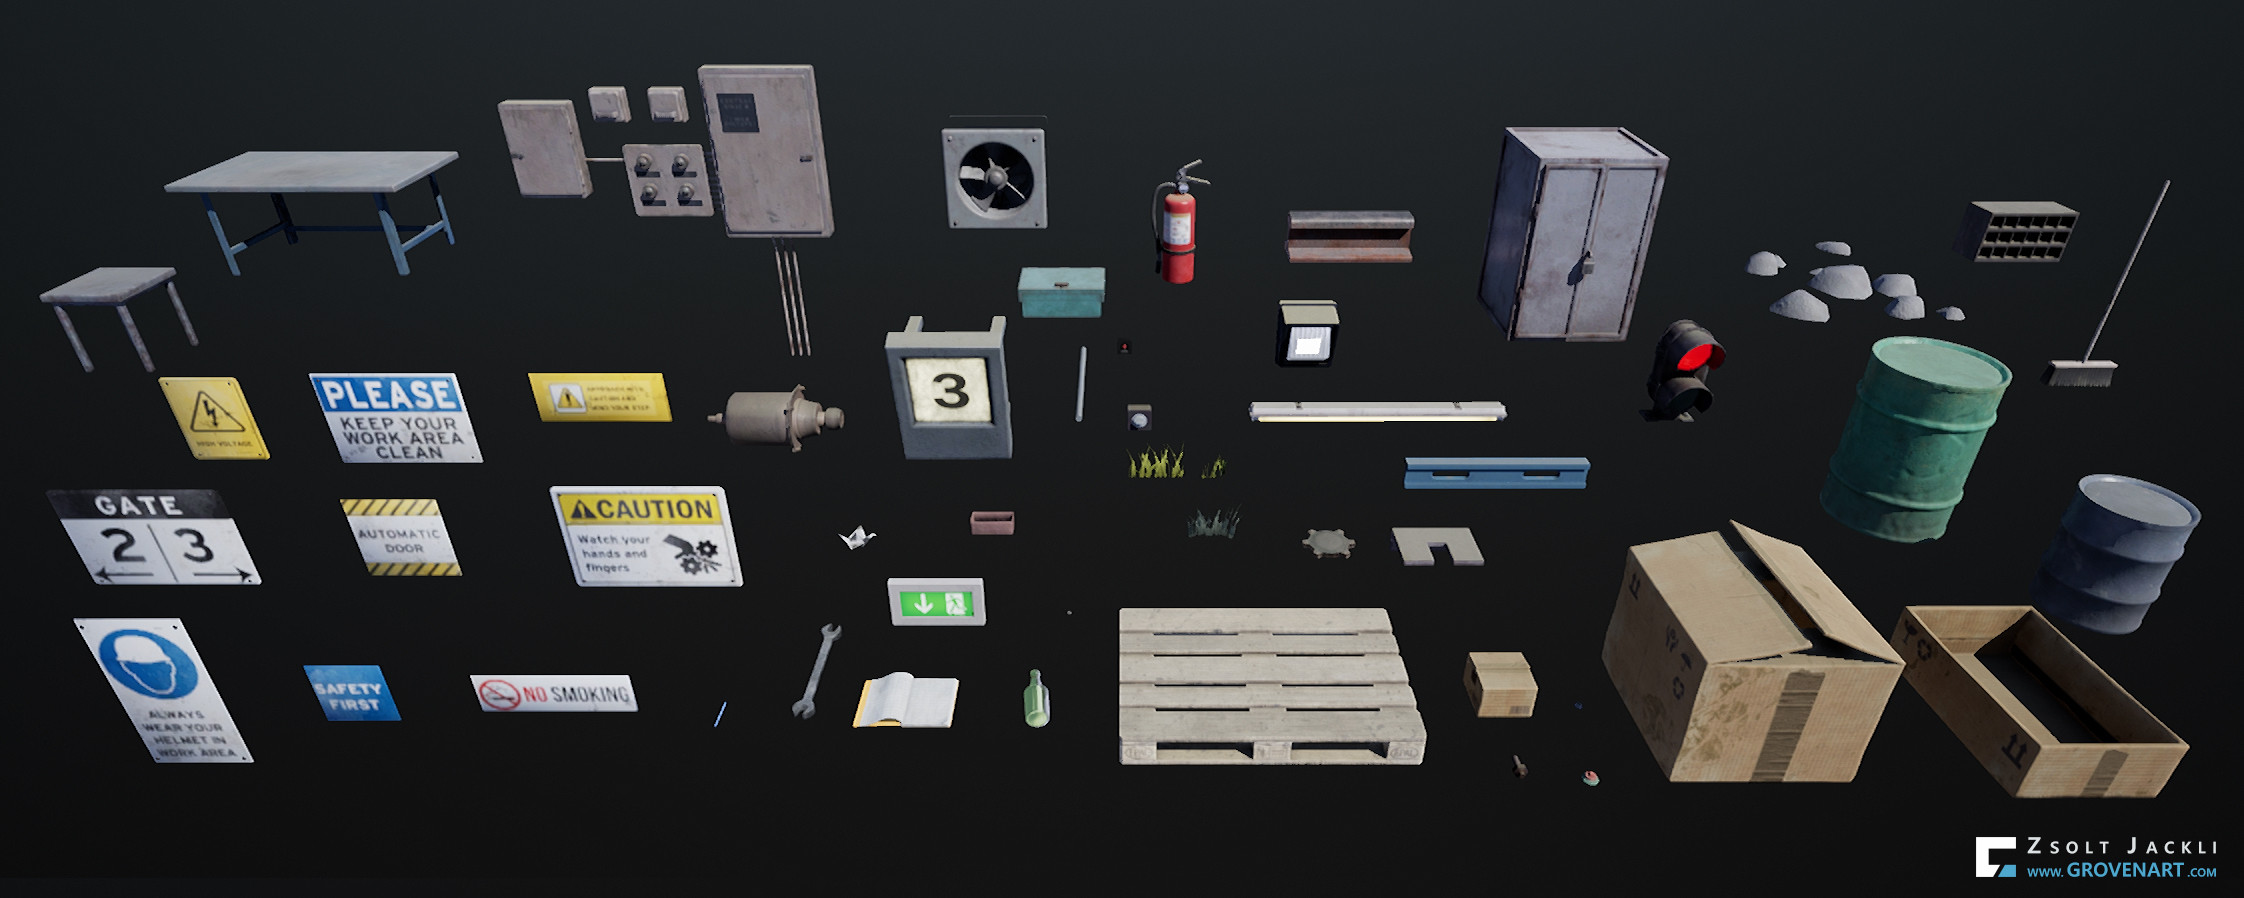 Assets used to populate the scene